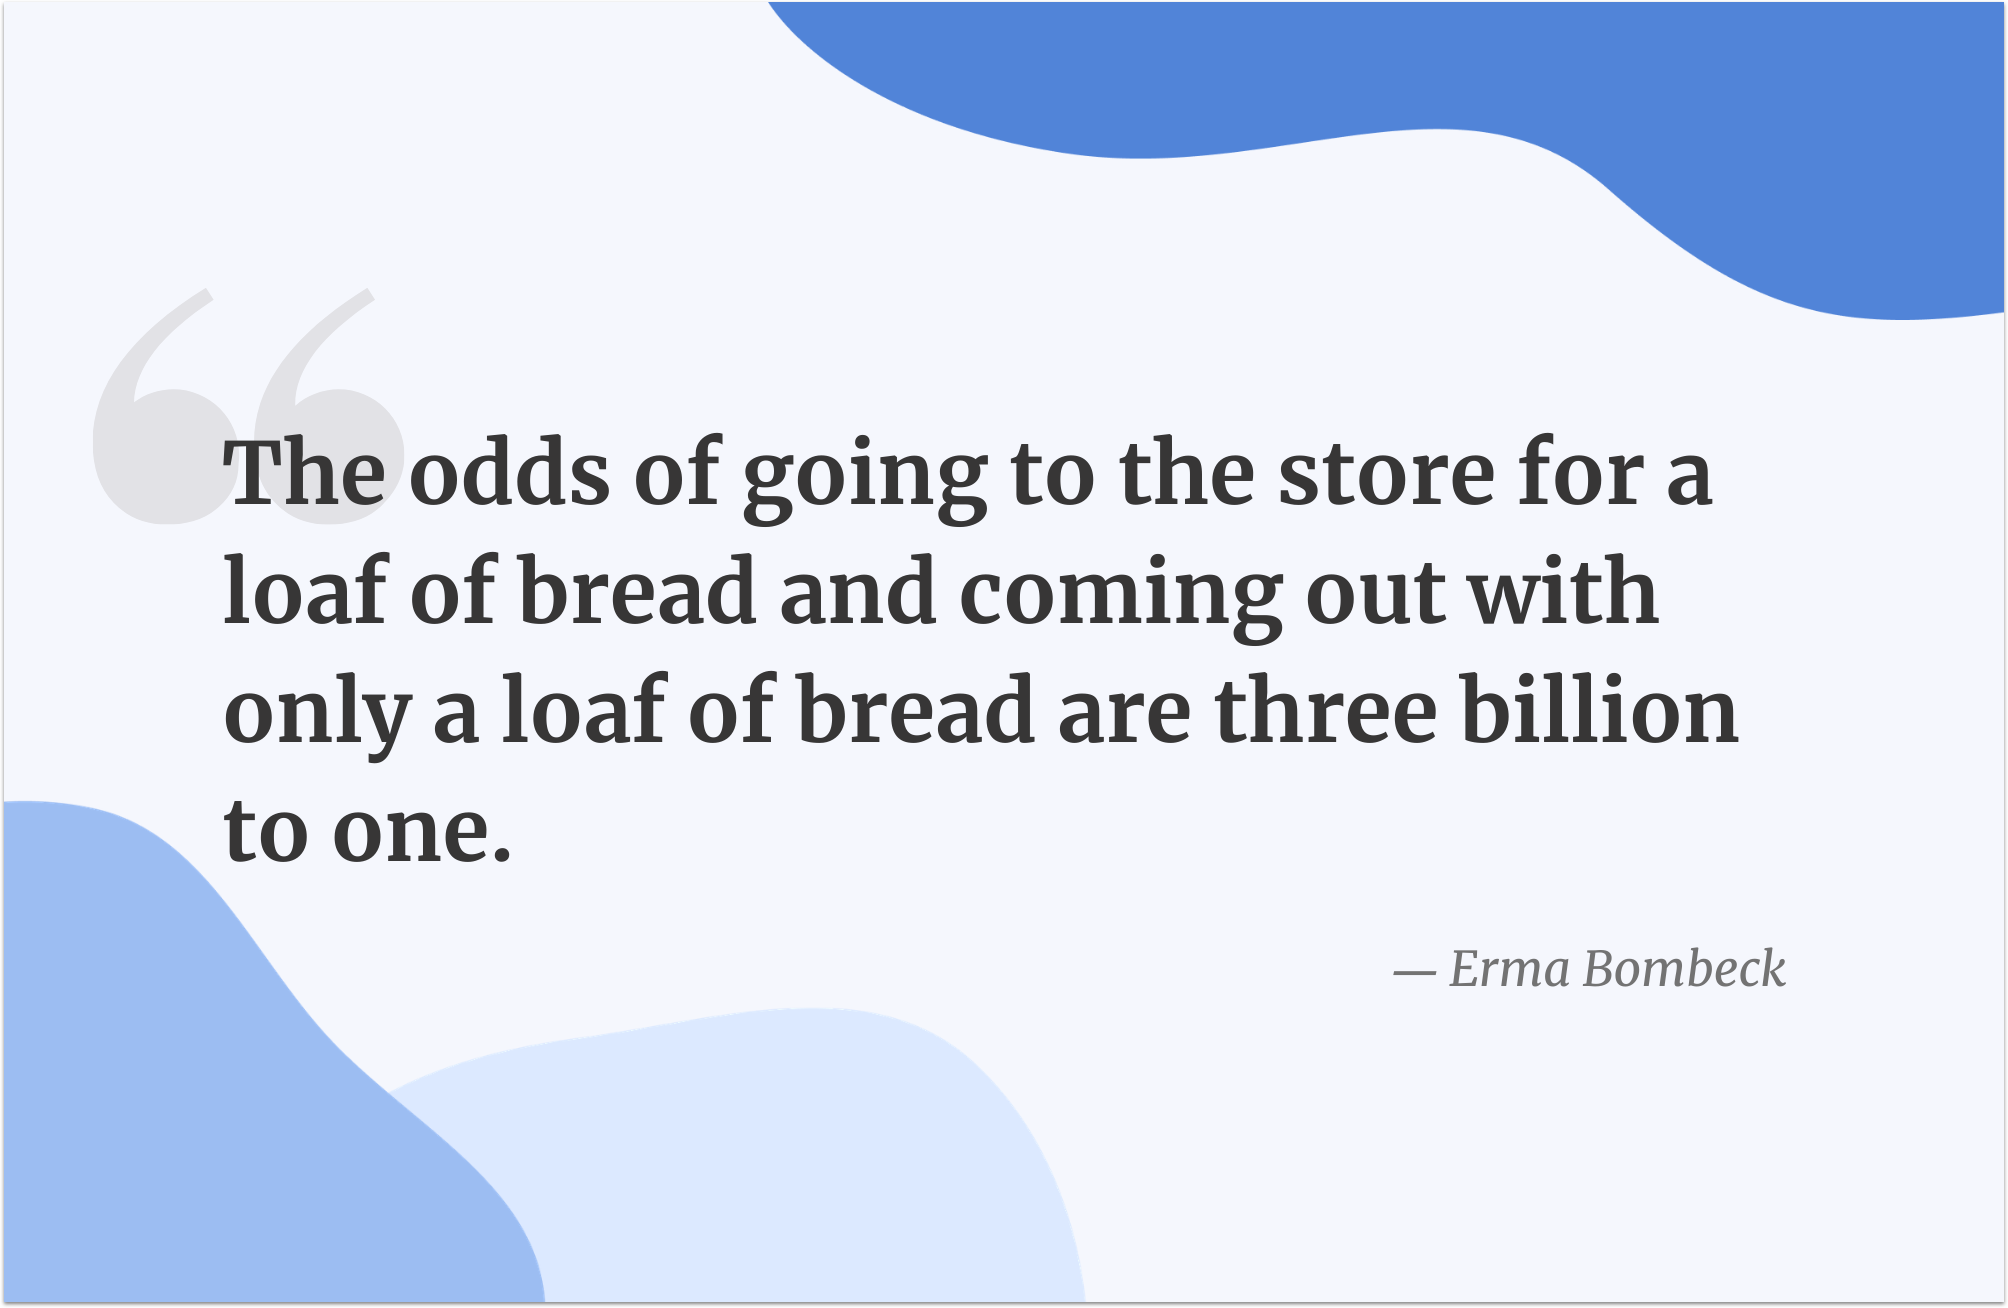 Black Friday quote by Erma Bombeck